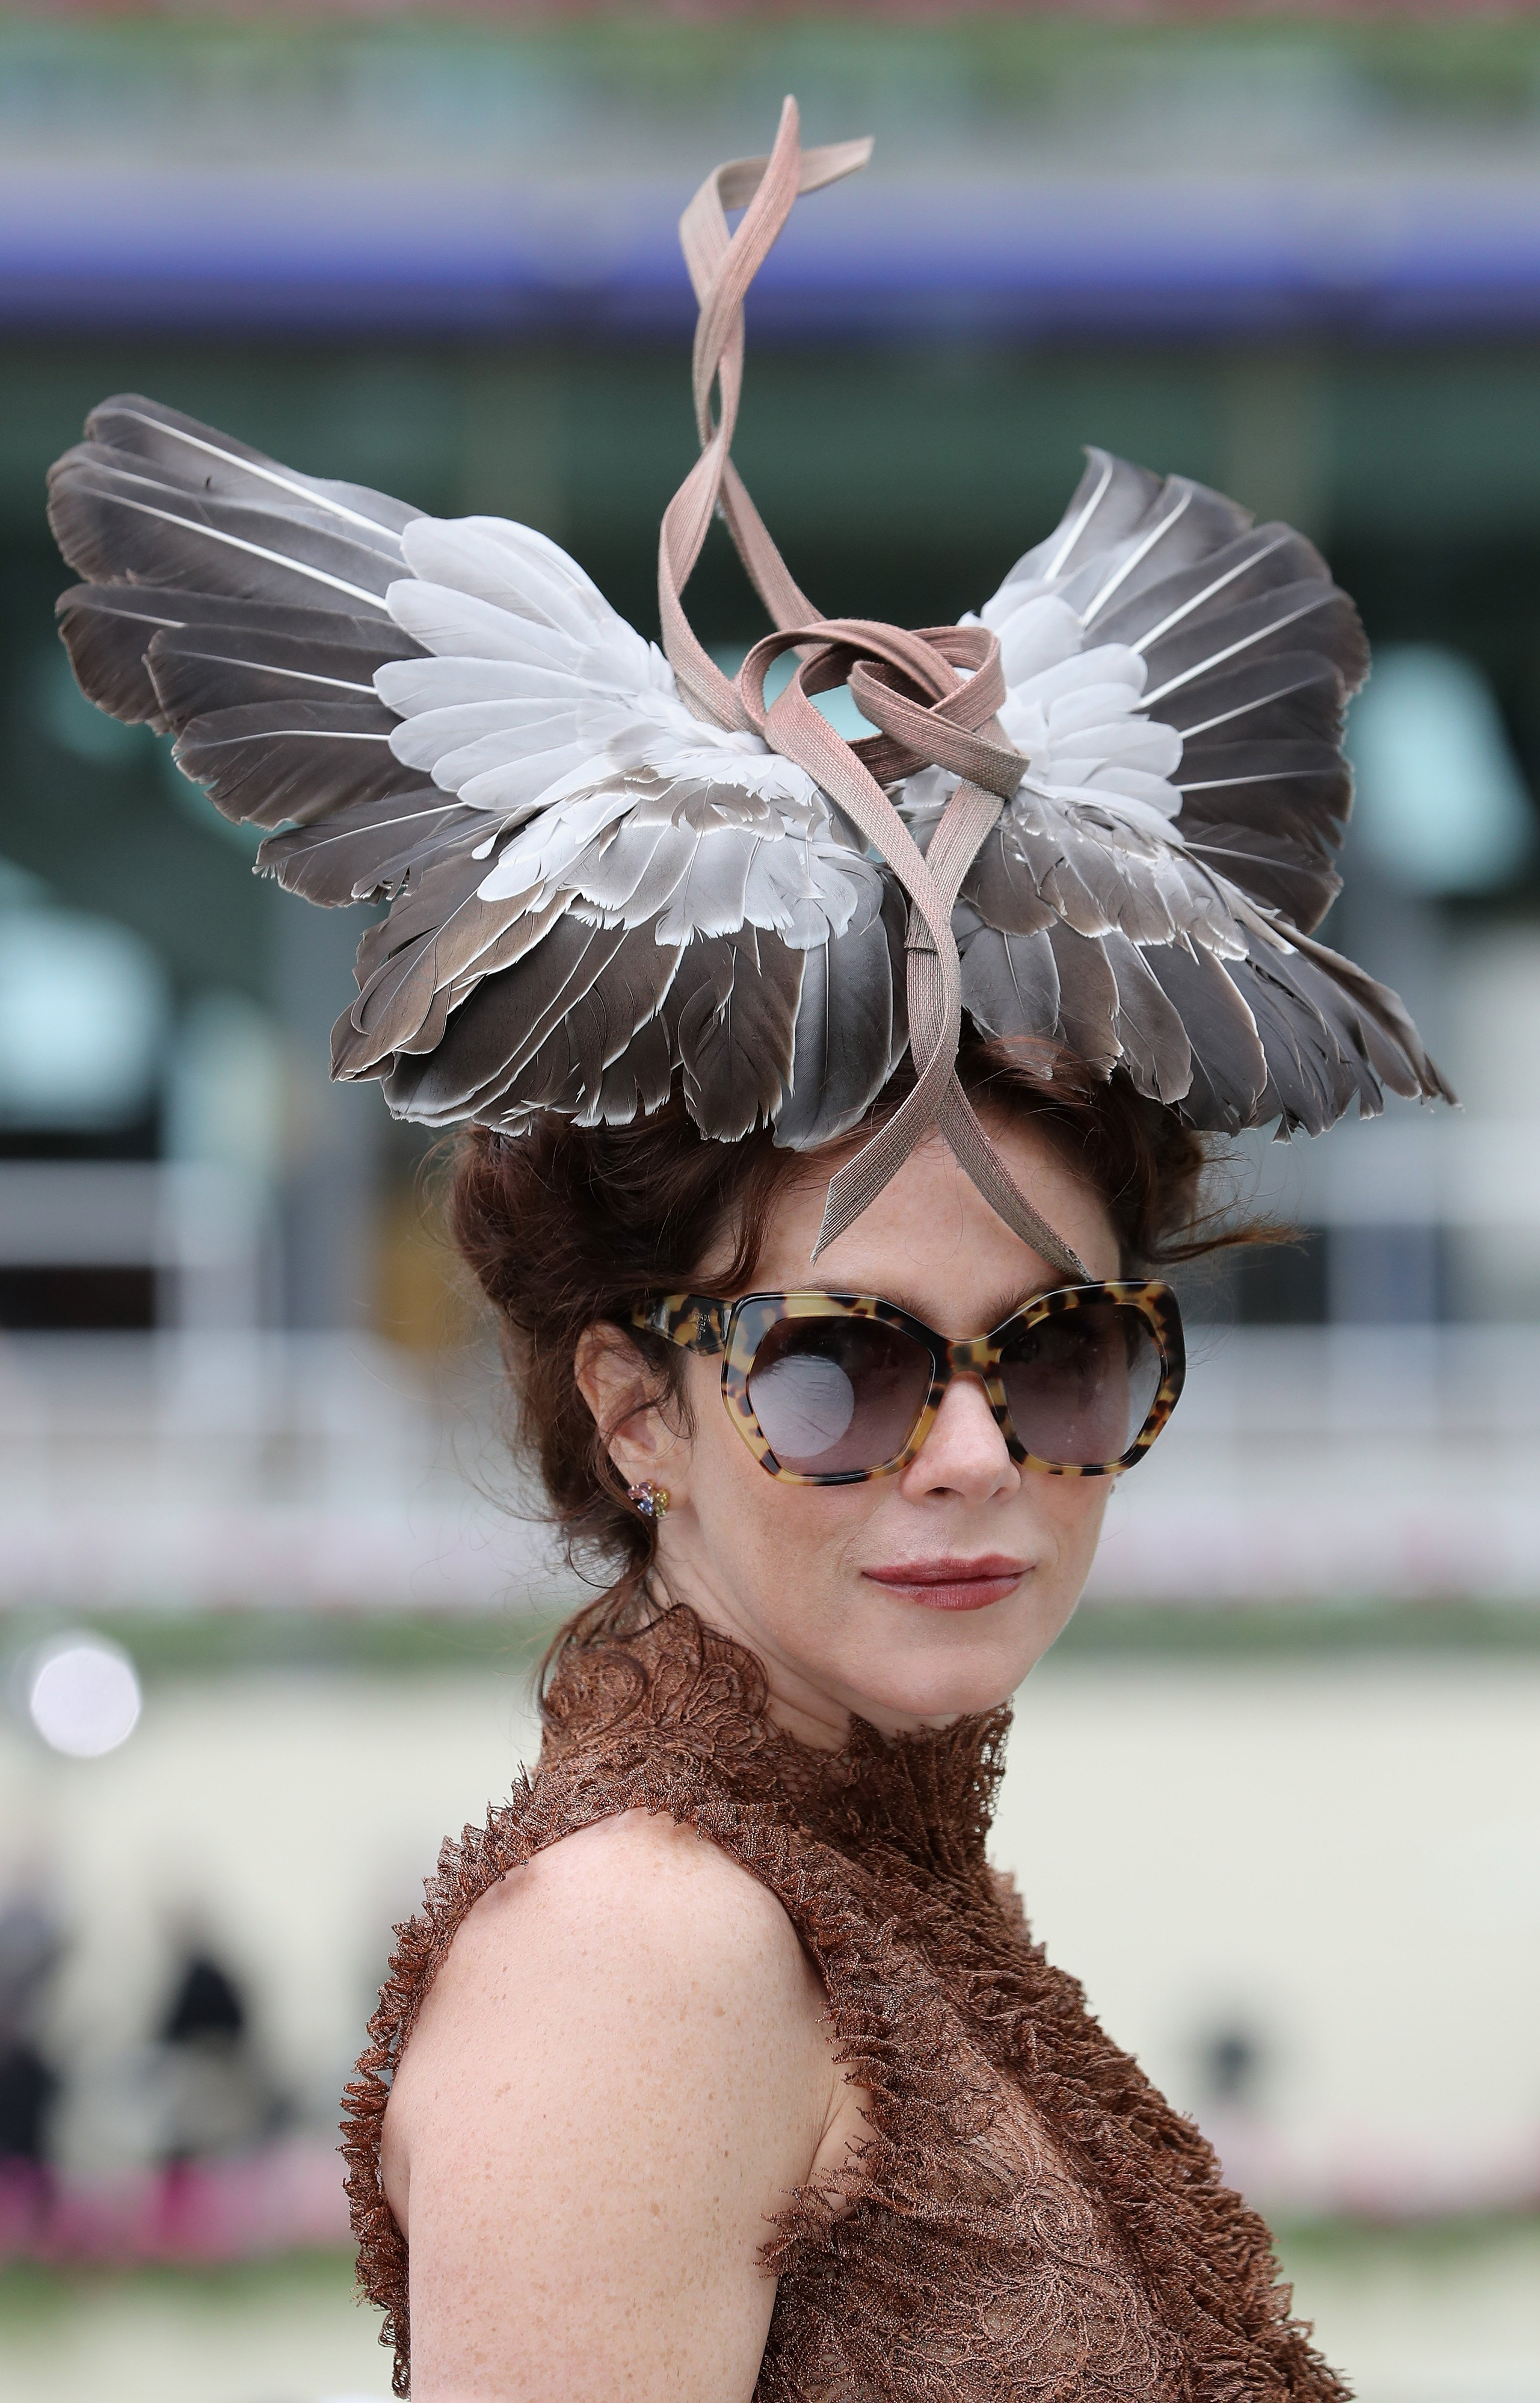 Actress Anna Friel at the Royal Ascot horse race meeting in Ascot, U.K., on June 17, 2016.